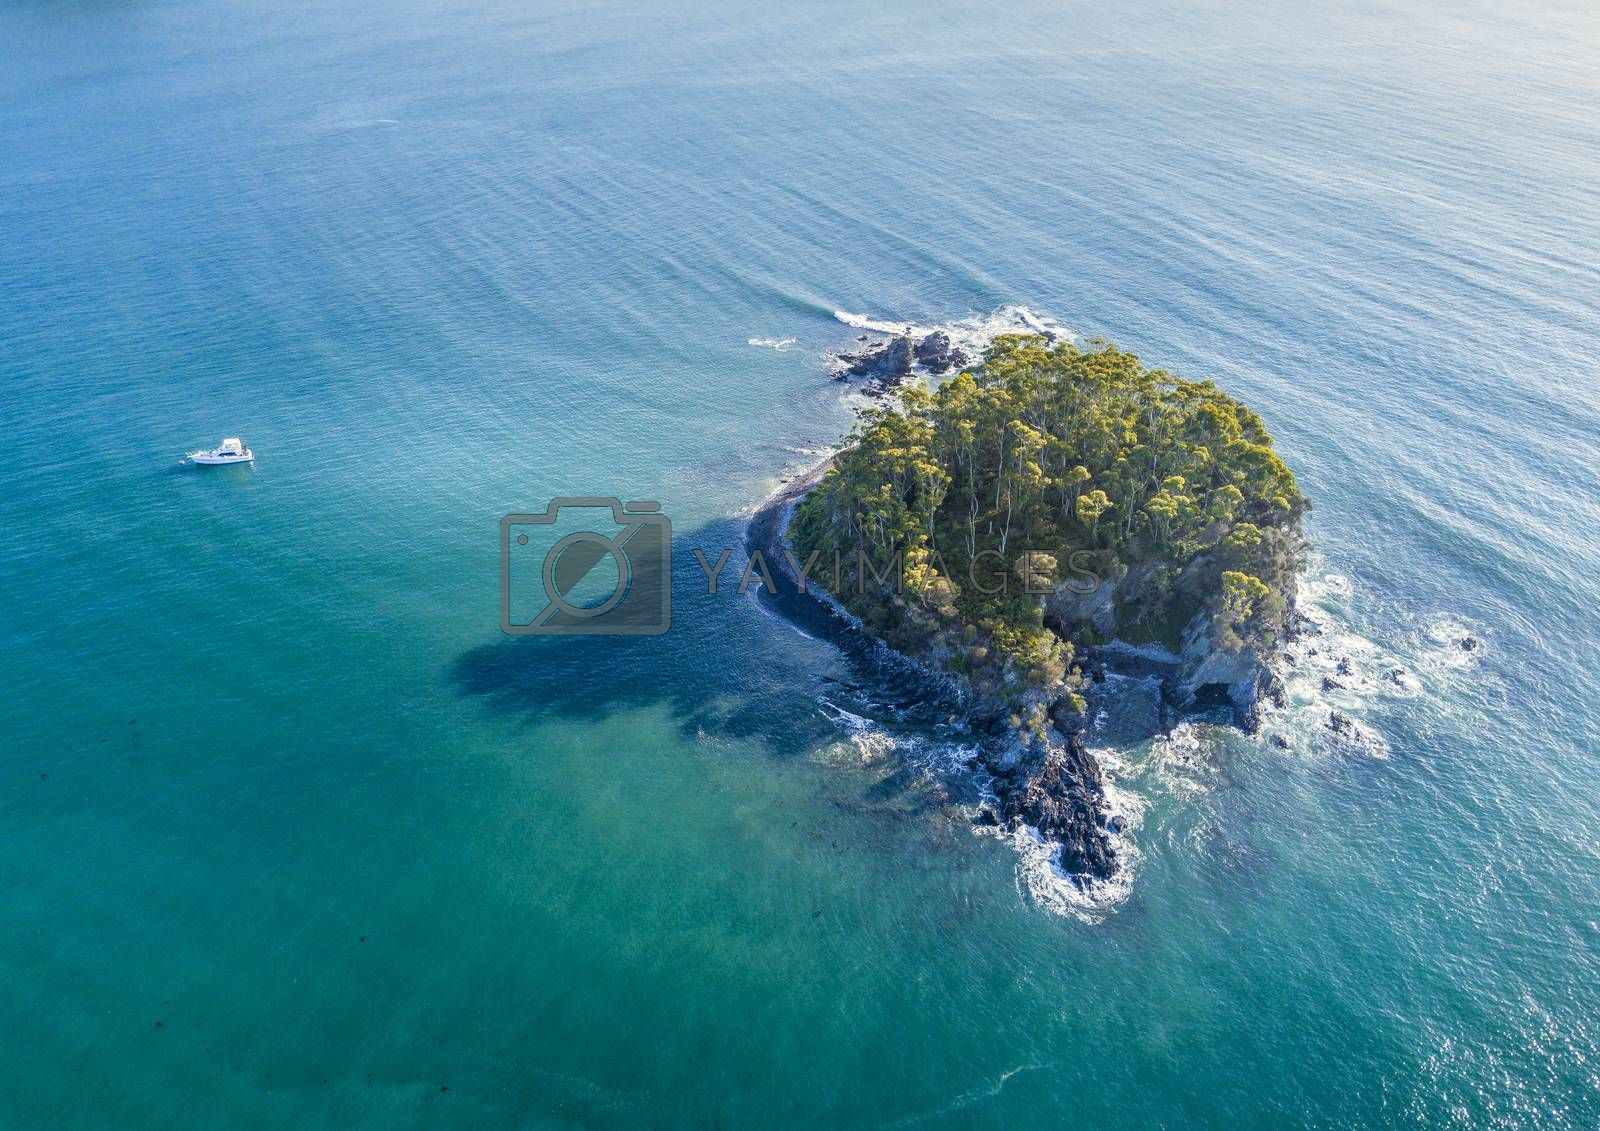 Aerial views of Snapper Island sitting 1 kilometre offshore in pristine aqua green waters of Batemans Bay Australia.  It lies a kilometre offshore and was a popular spot for smuggling as contraband could be hidden in the cave which had a back door escape route. Popular kayak or paddle venture.